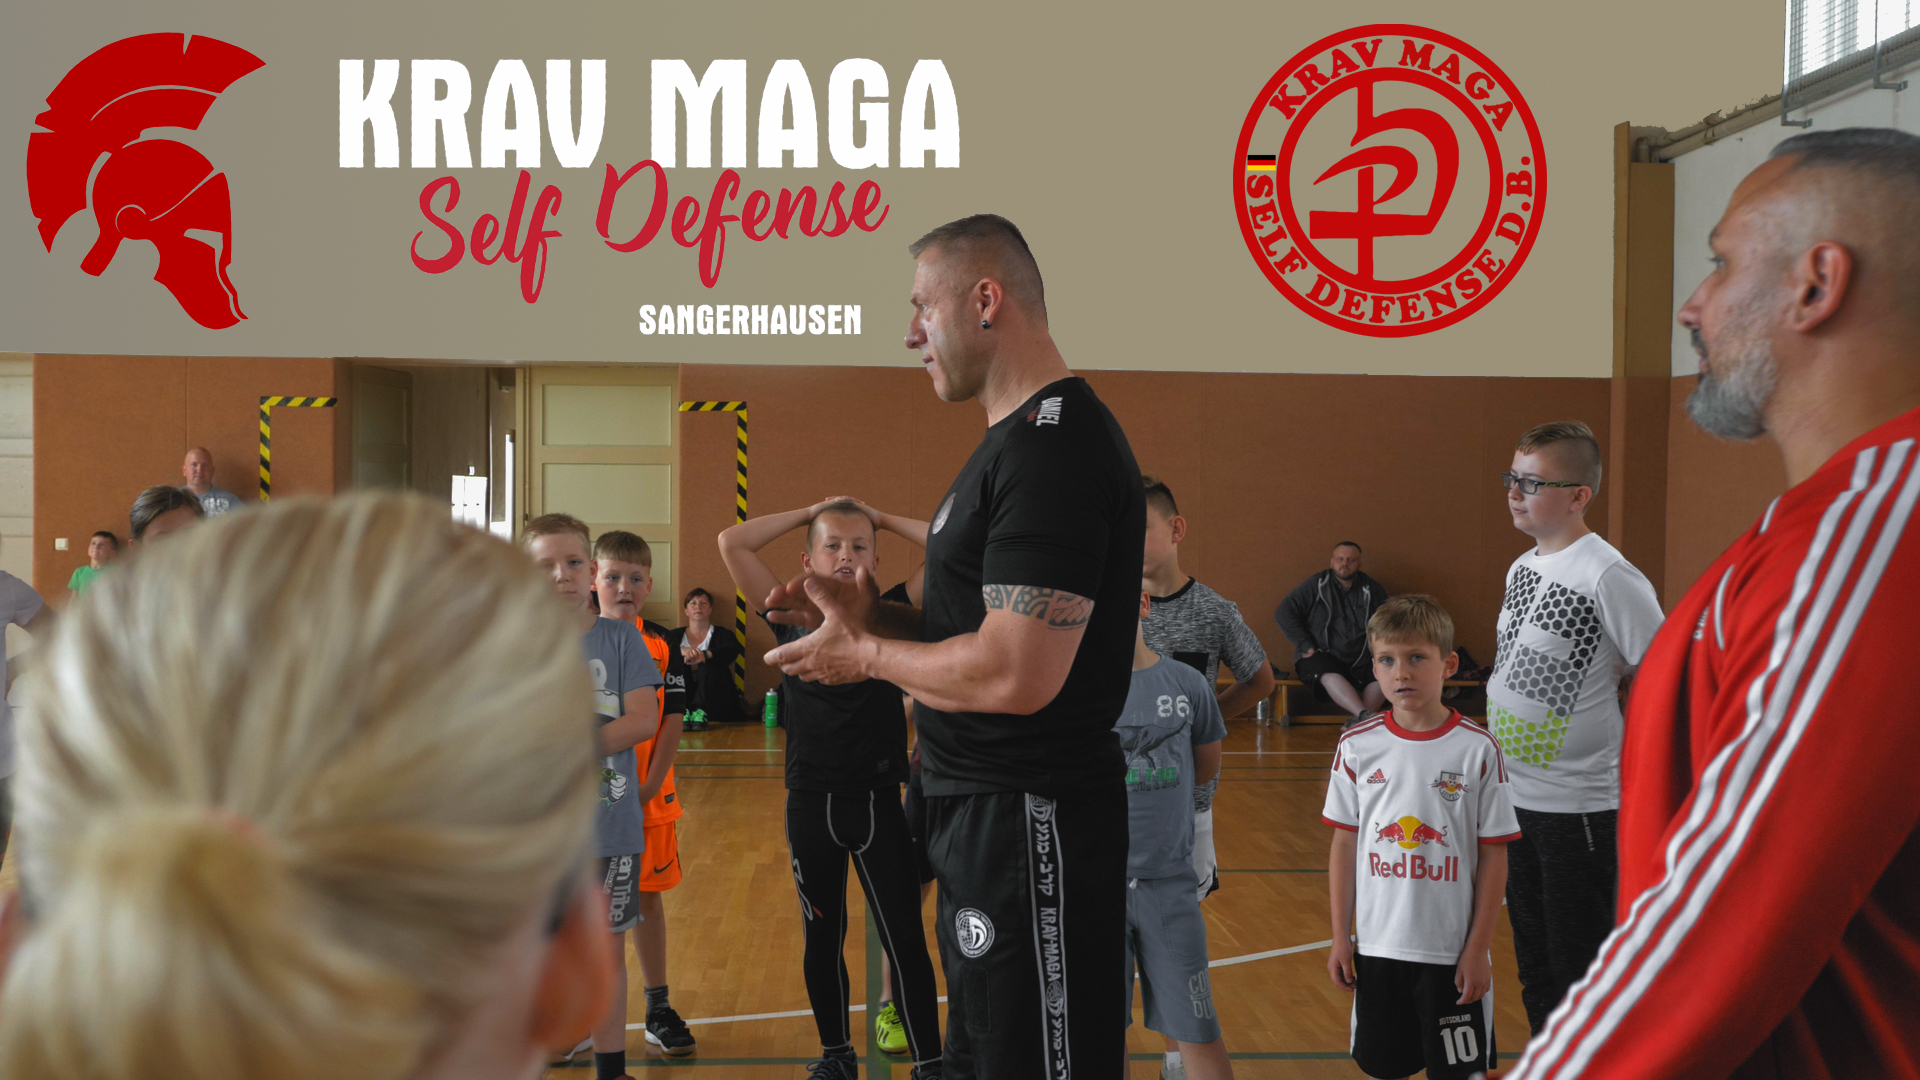 KRAV MAGA Self Defense - Sangerhausen - Imagevideo